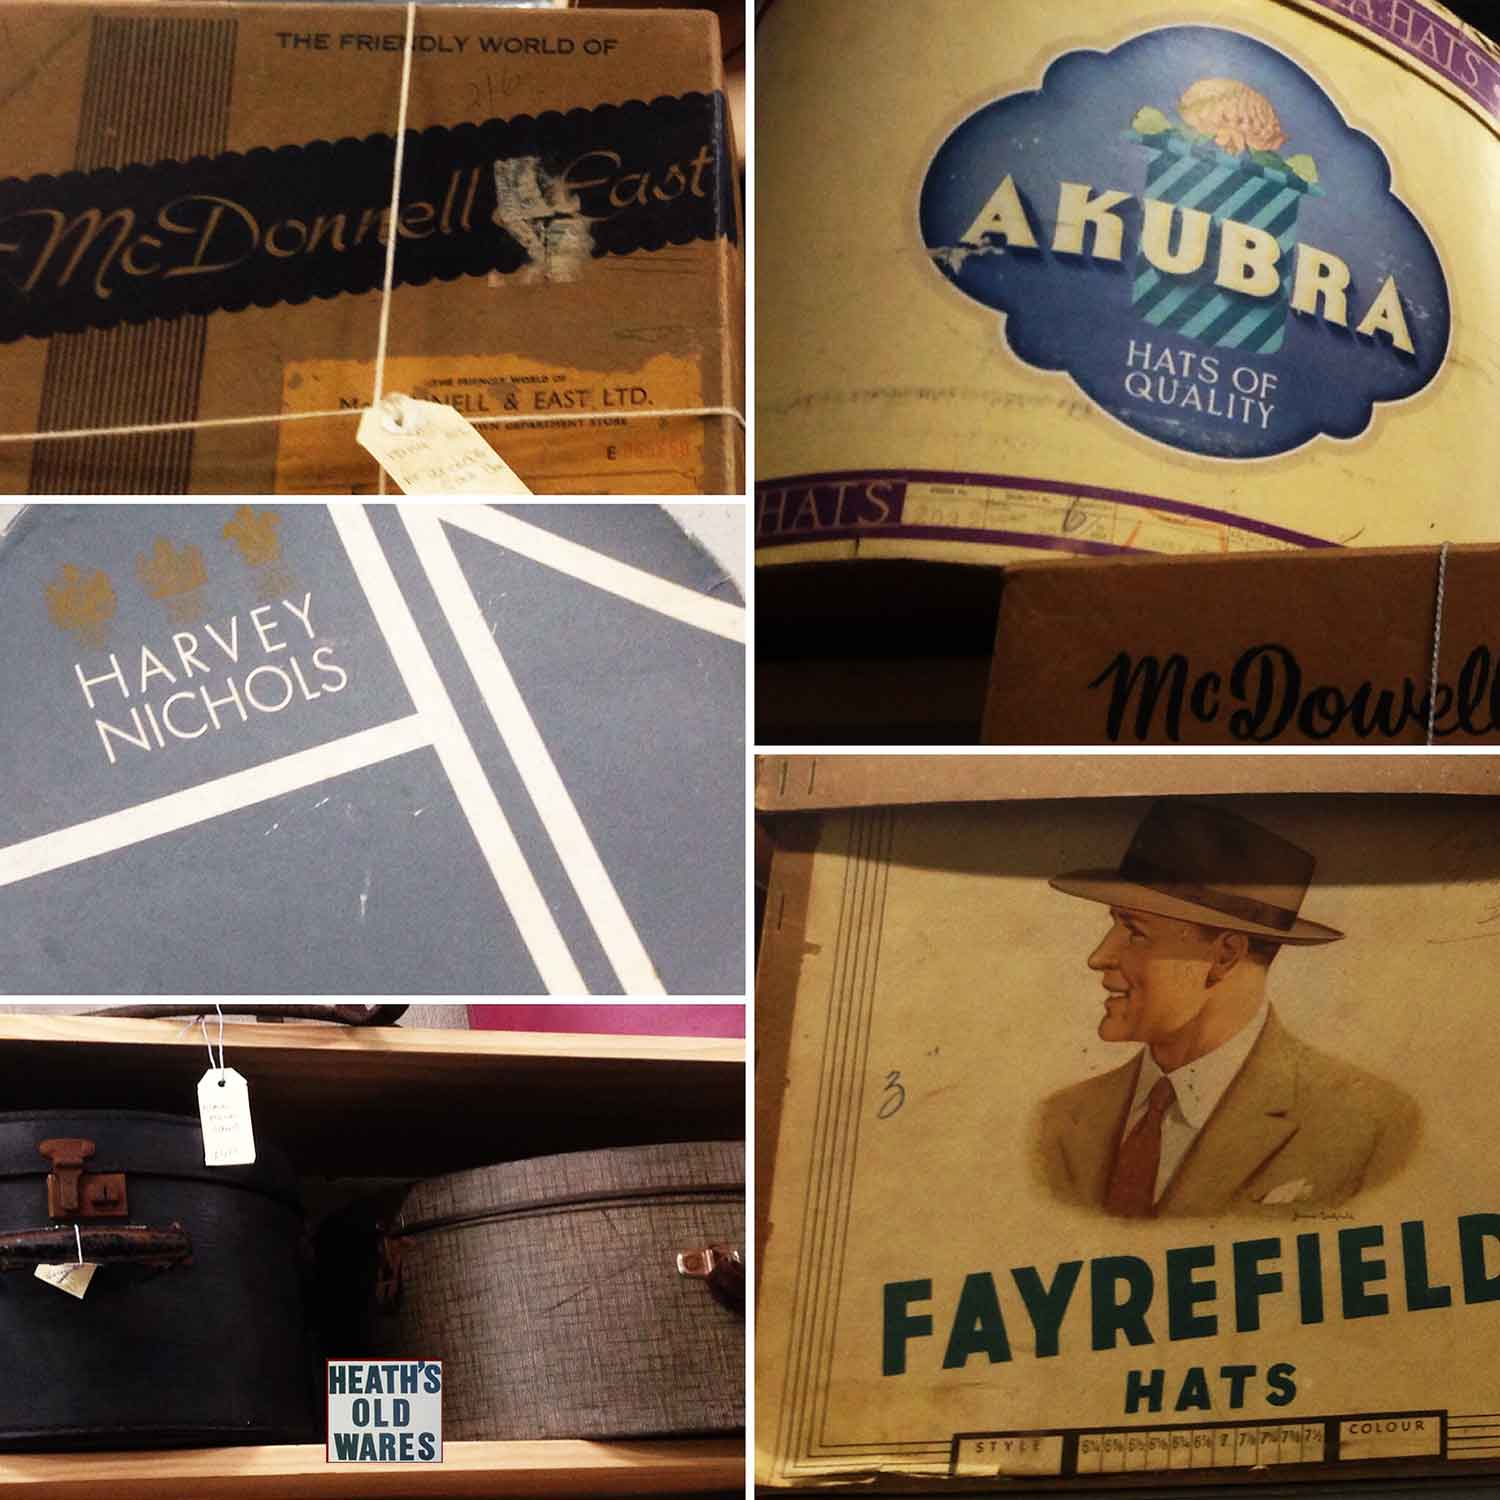 Vintage and antique hatboxes for sale at Heaths Old Wares, Collectables, Antiques & Industrial Antiques, 19-21 Broadway, Burringbar NSW 2483 Ph 0266771181 open 7 days